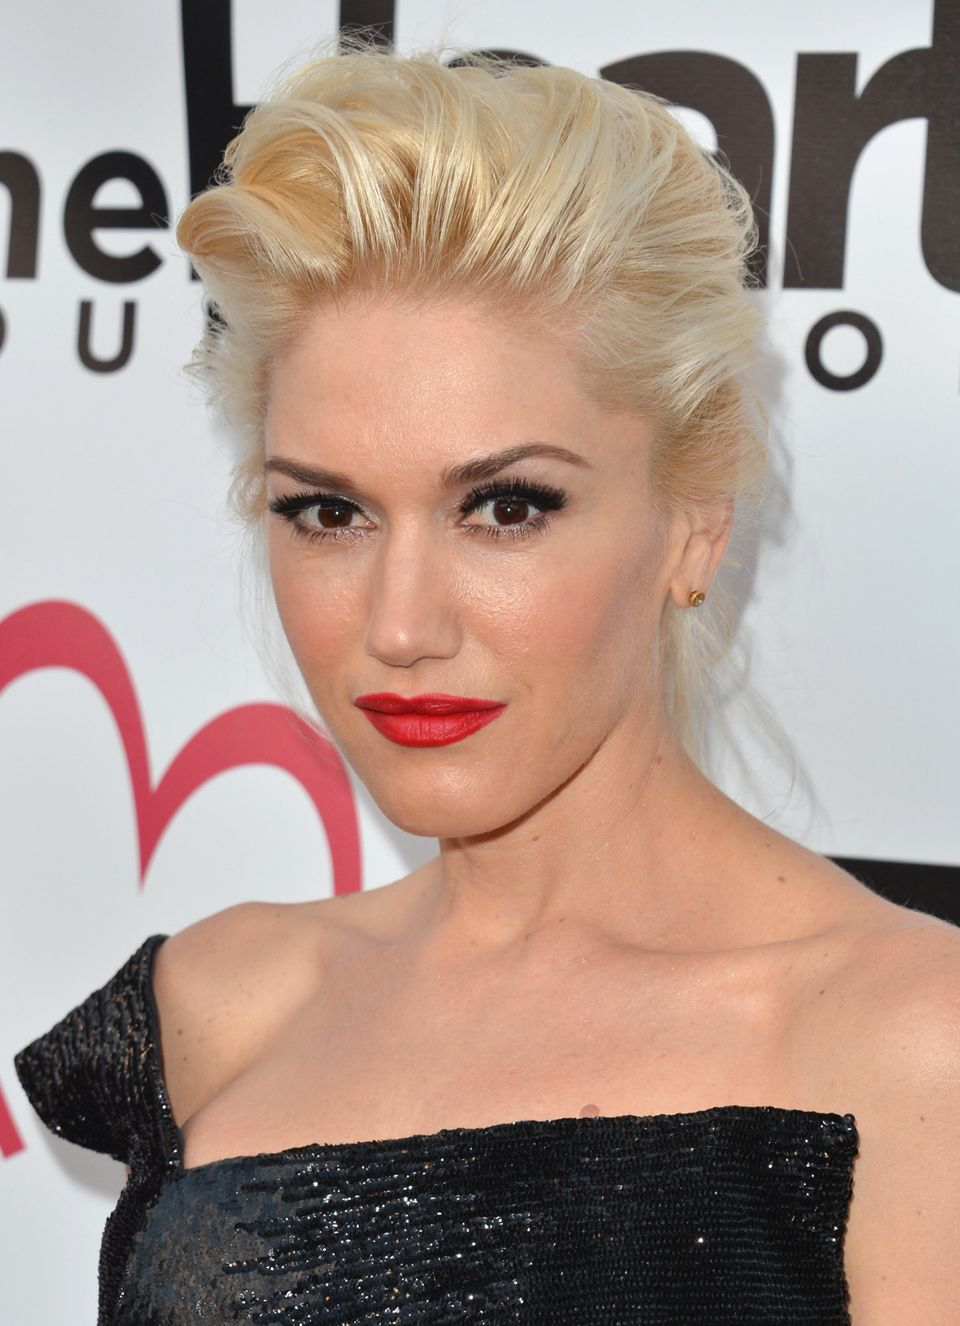 HOLLYWOOD, CA - MAY 10:  Singer Gwen Stefani arrives to The Heart Foundation Gala at Hollywood Palladium on May 10, 2012 in H